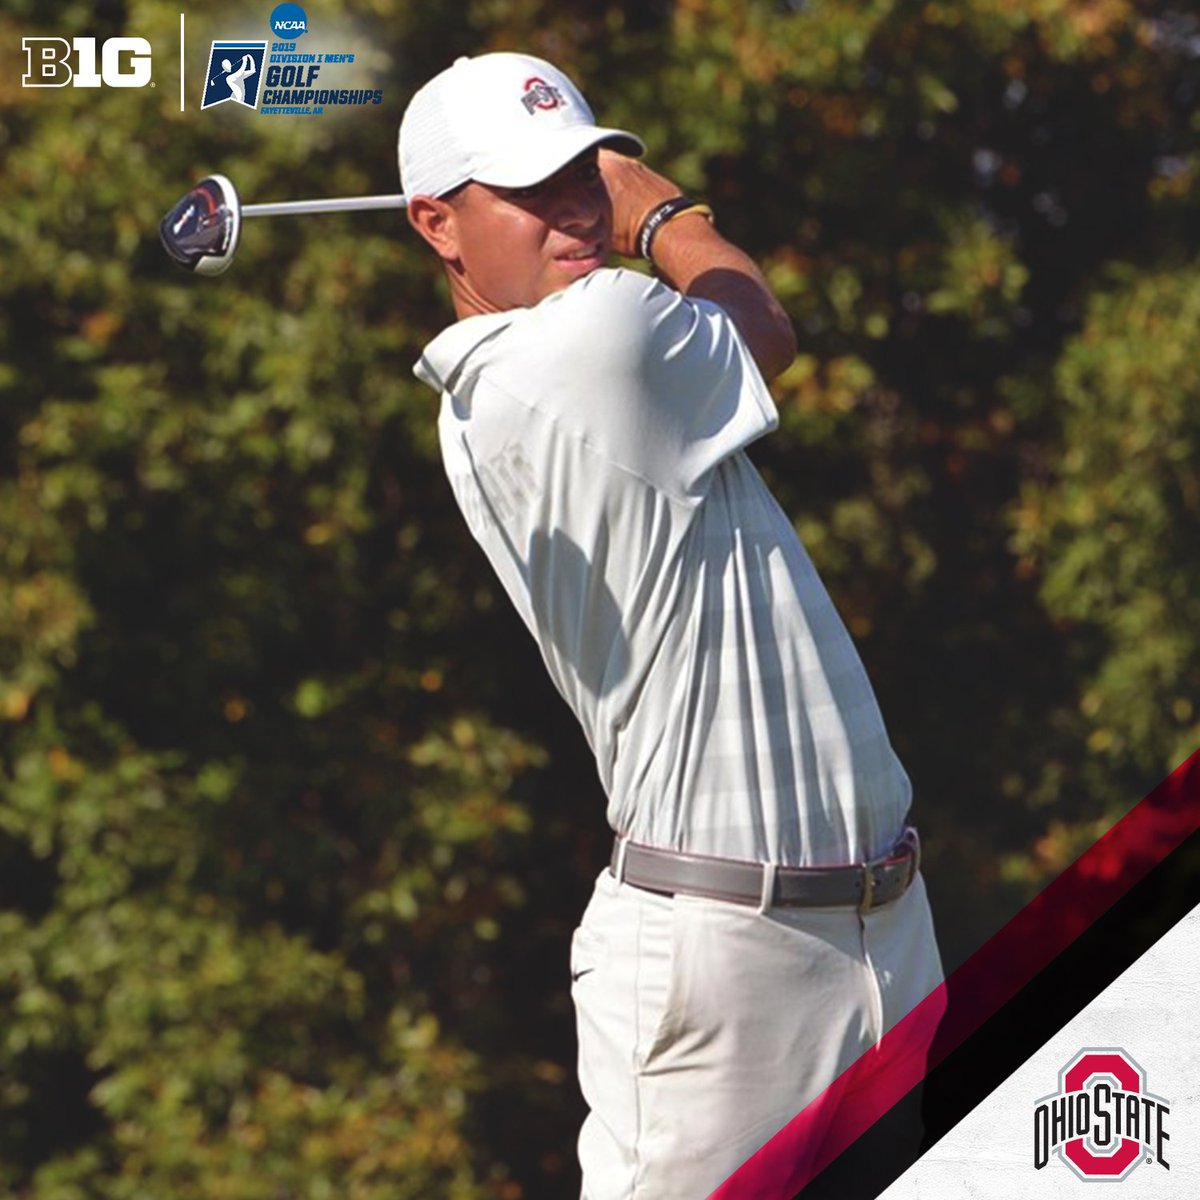 Following a 20-under par performance at last week's regionals, @OhioStateMGOLF is @NCAA Championships-bound for the 32nd time in program history and the first time since 2011.